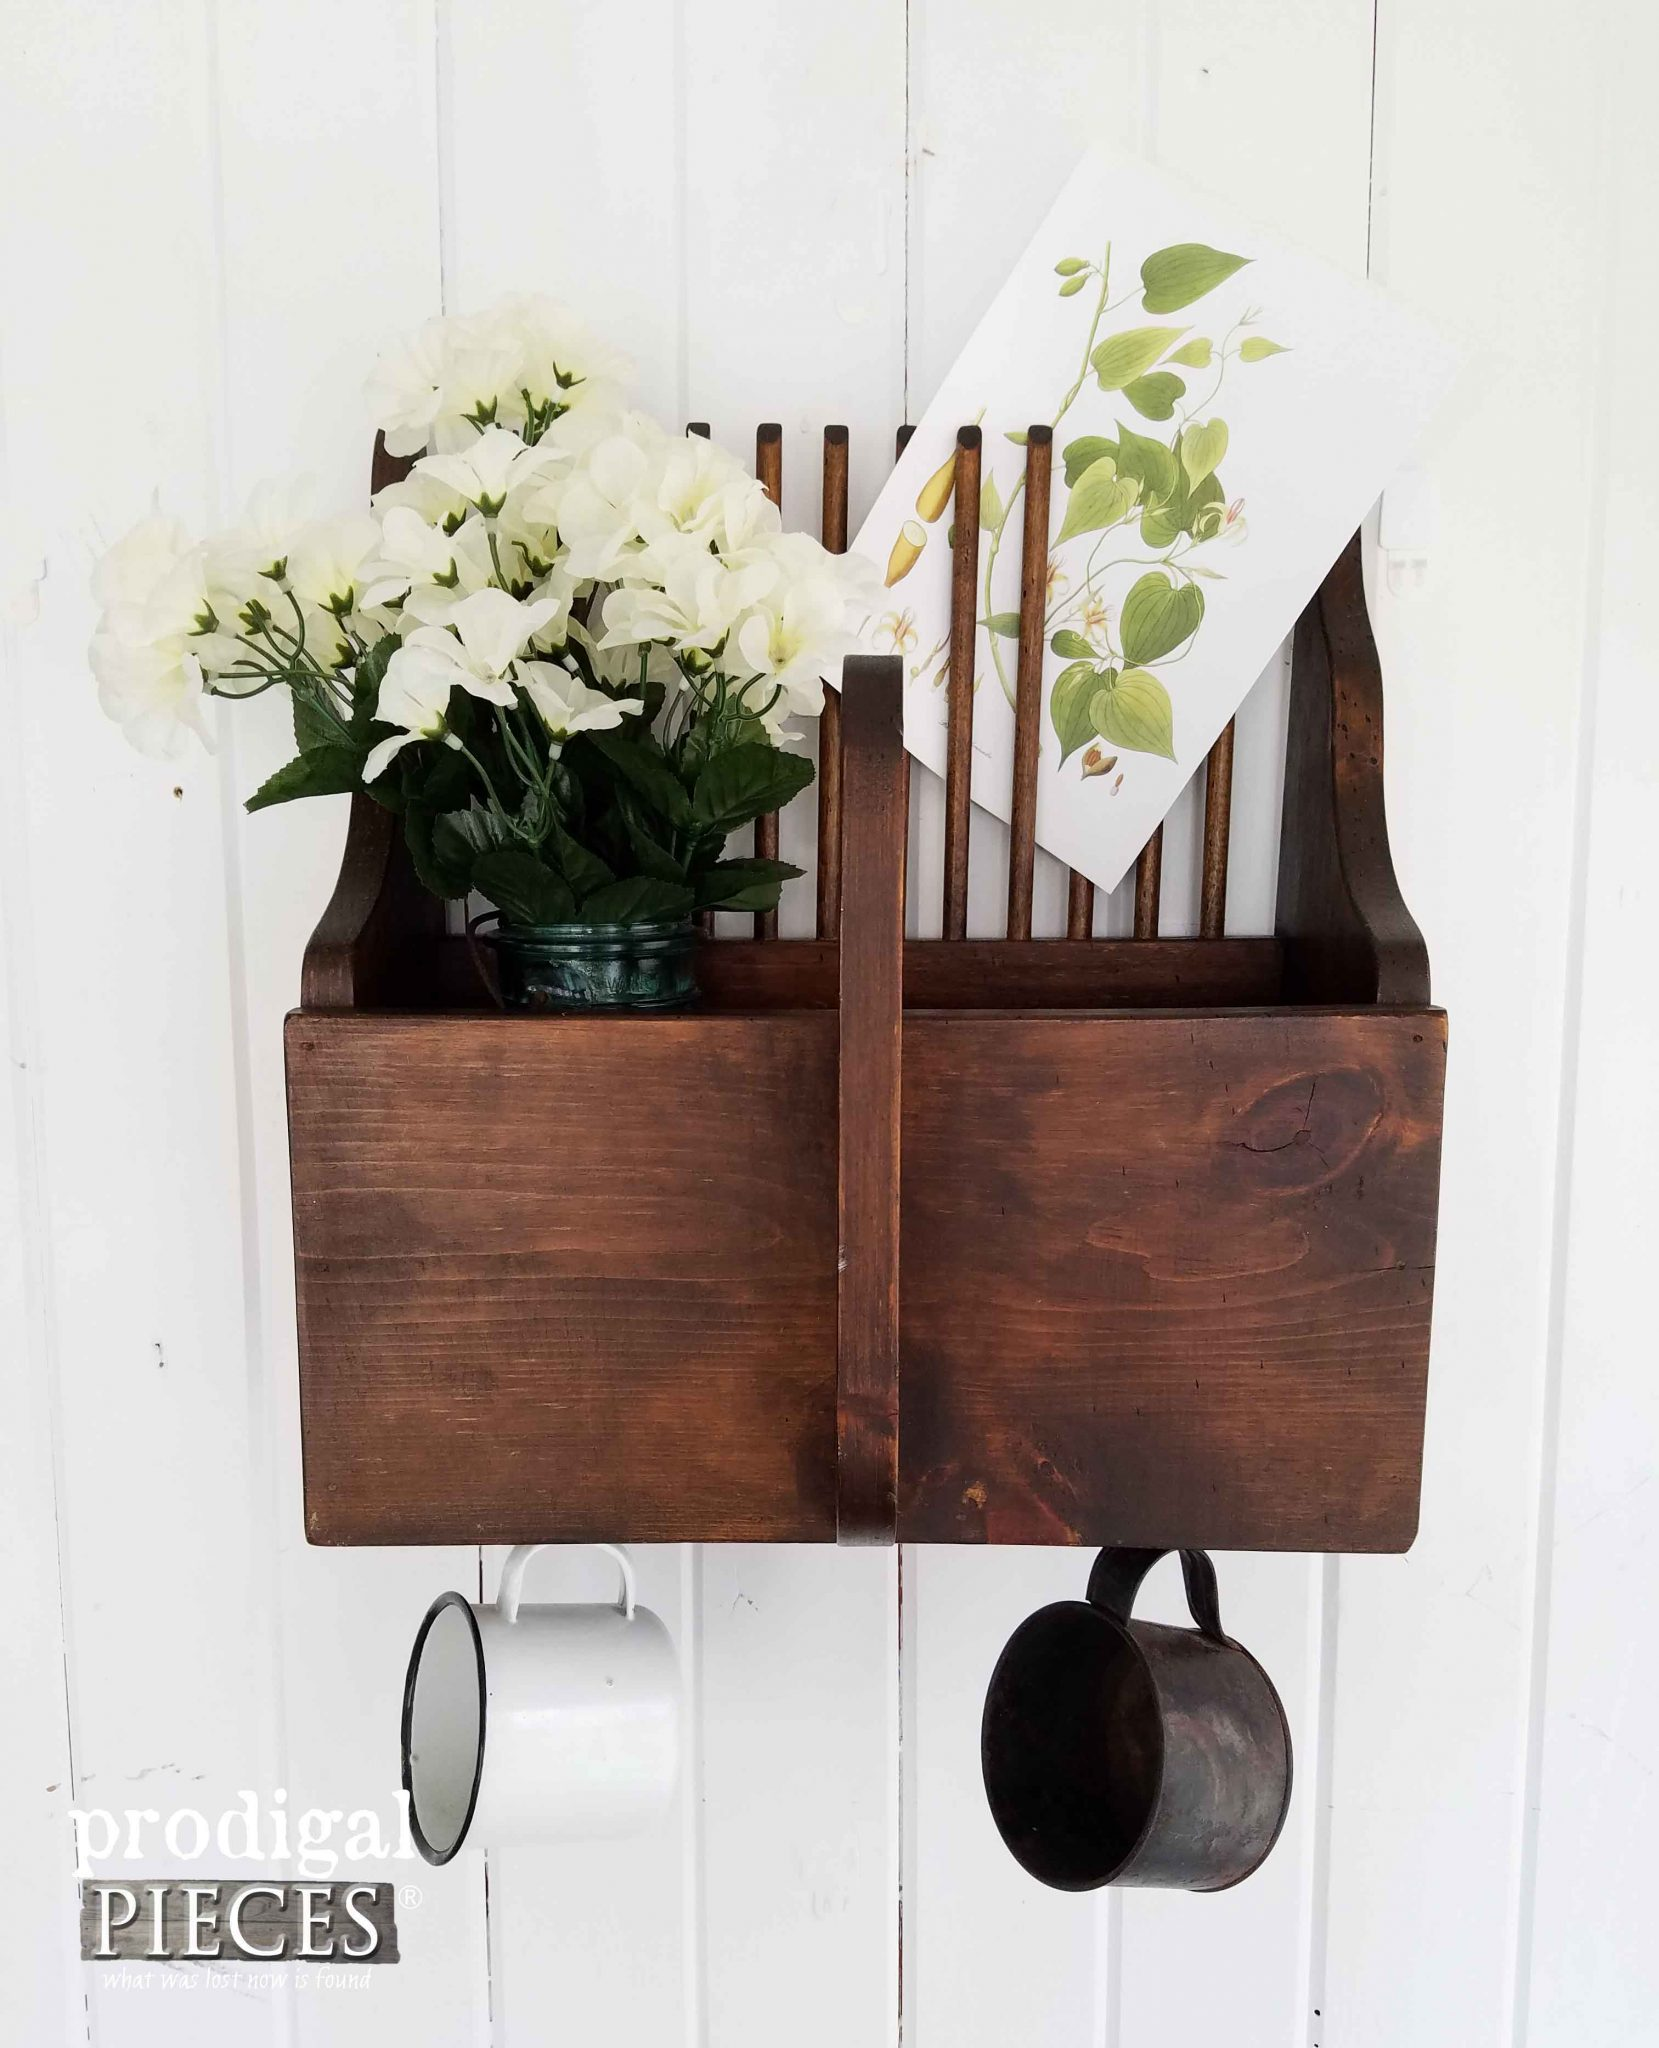 Apple Picker Repurposed into a Wall Pocket by Prodigal Pieces | prodigalpieces.com